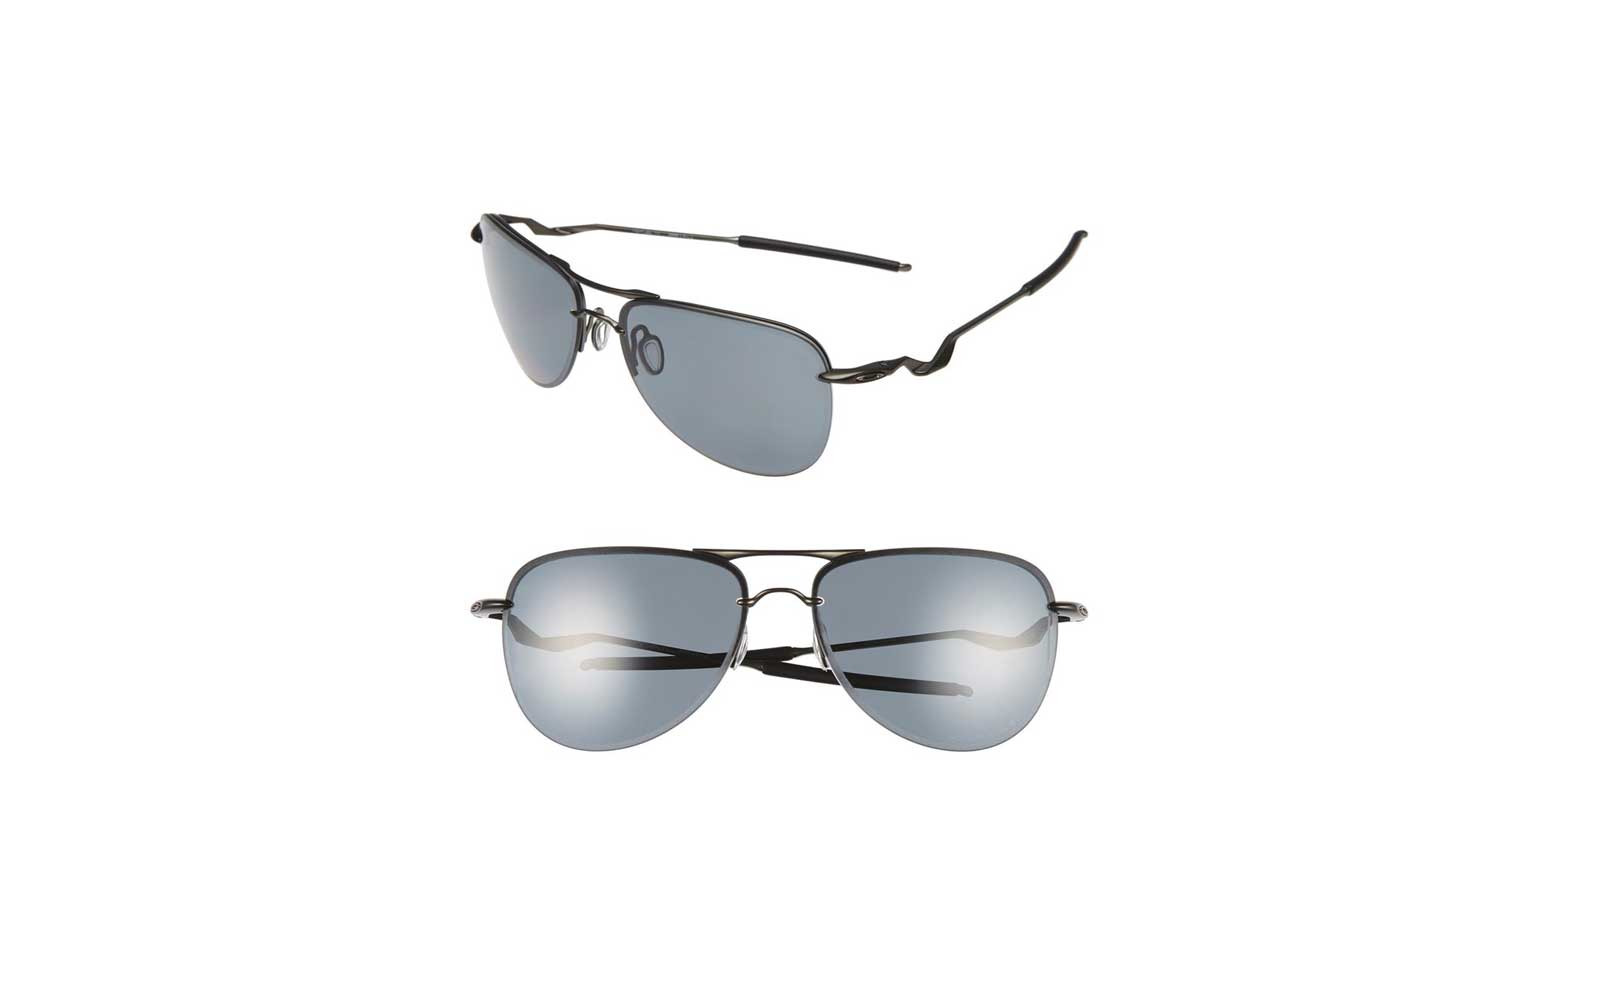 Oakley 'Tailpin' Sunglasses